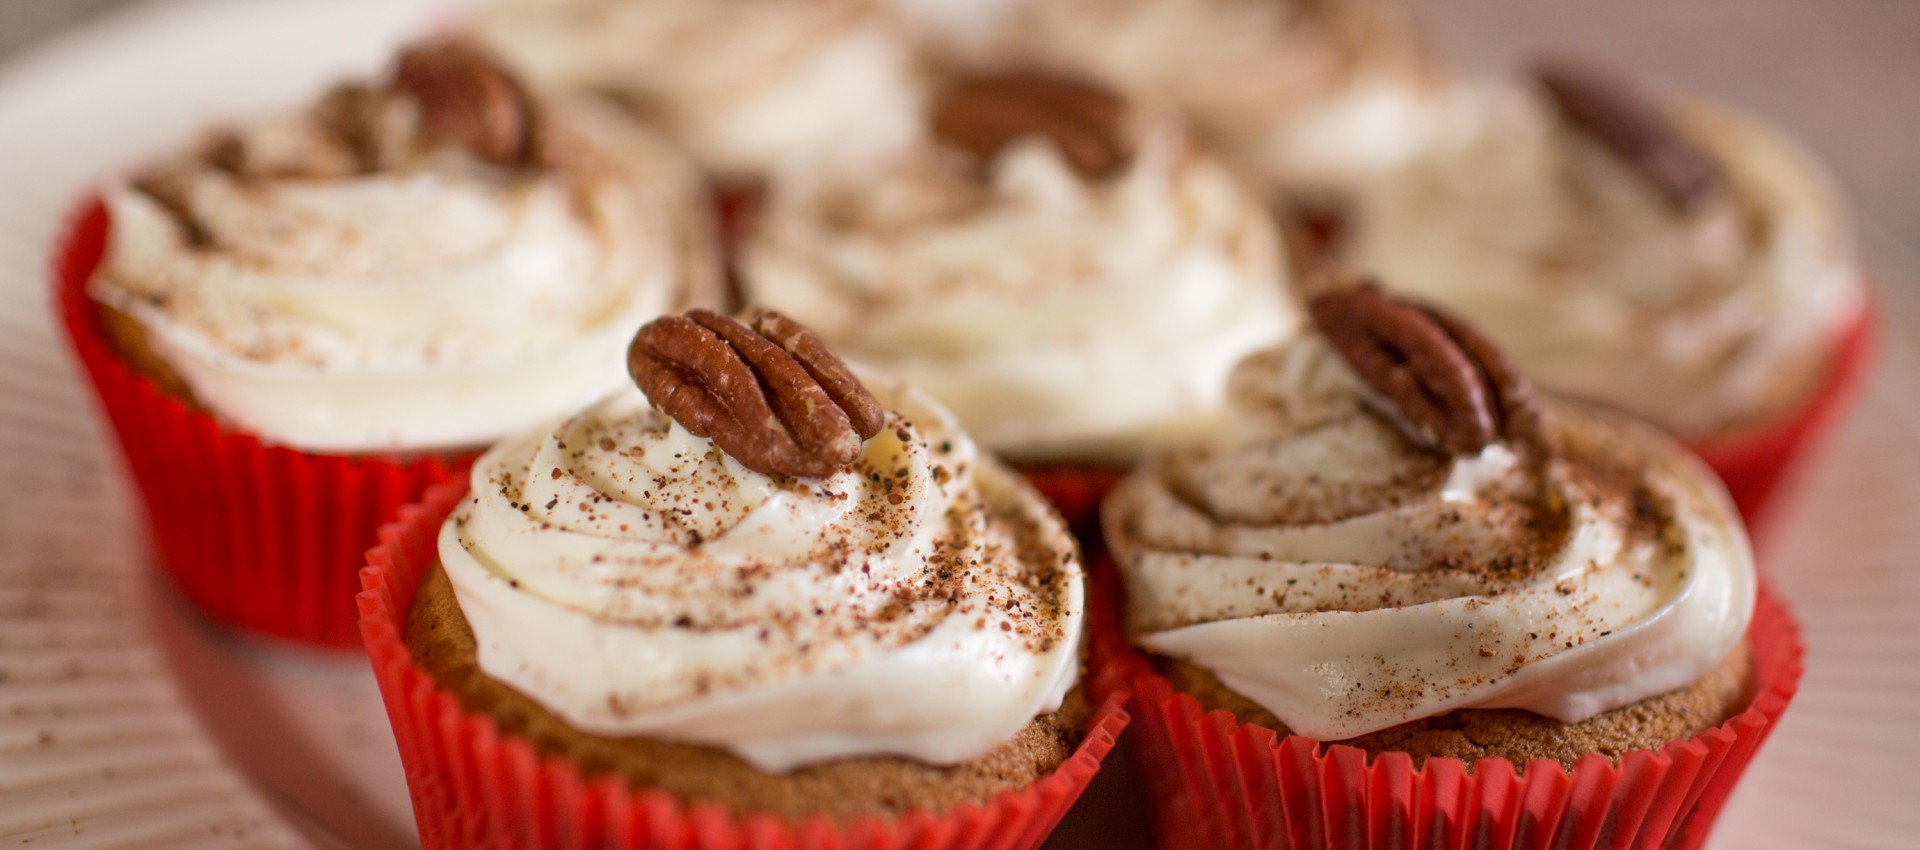 Pumpkin Puree Cupcakes with Pecans Image